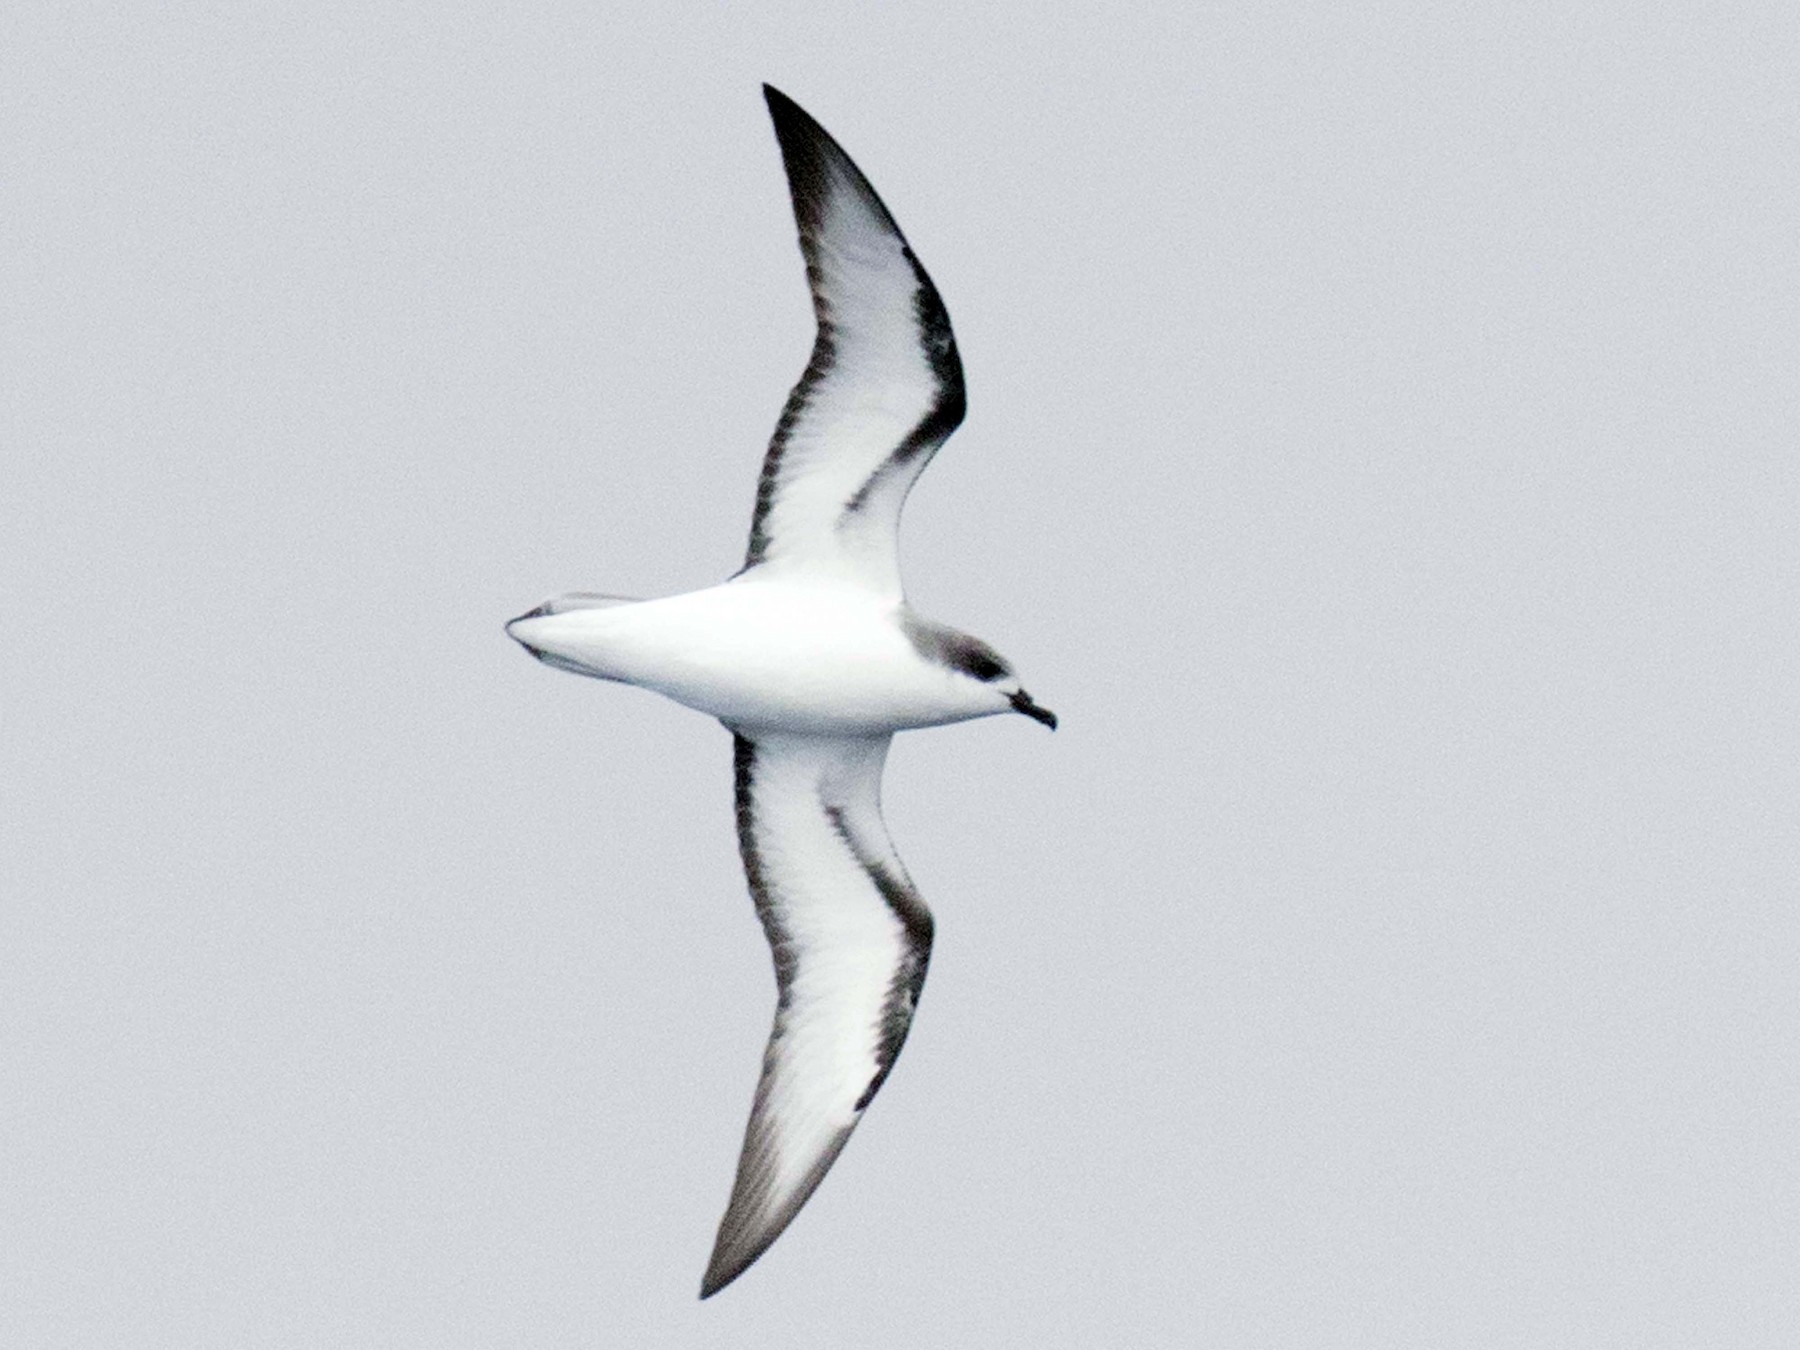 Cook's Petrel - Richard Webber